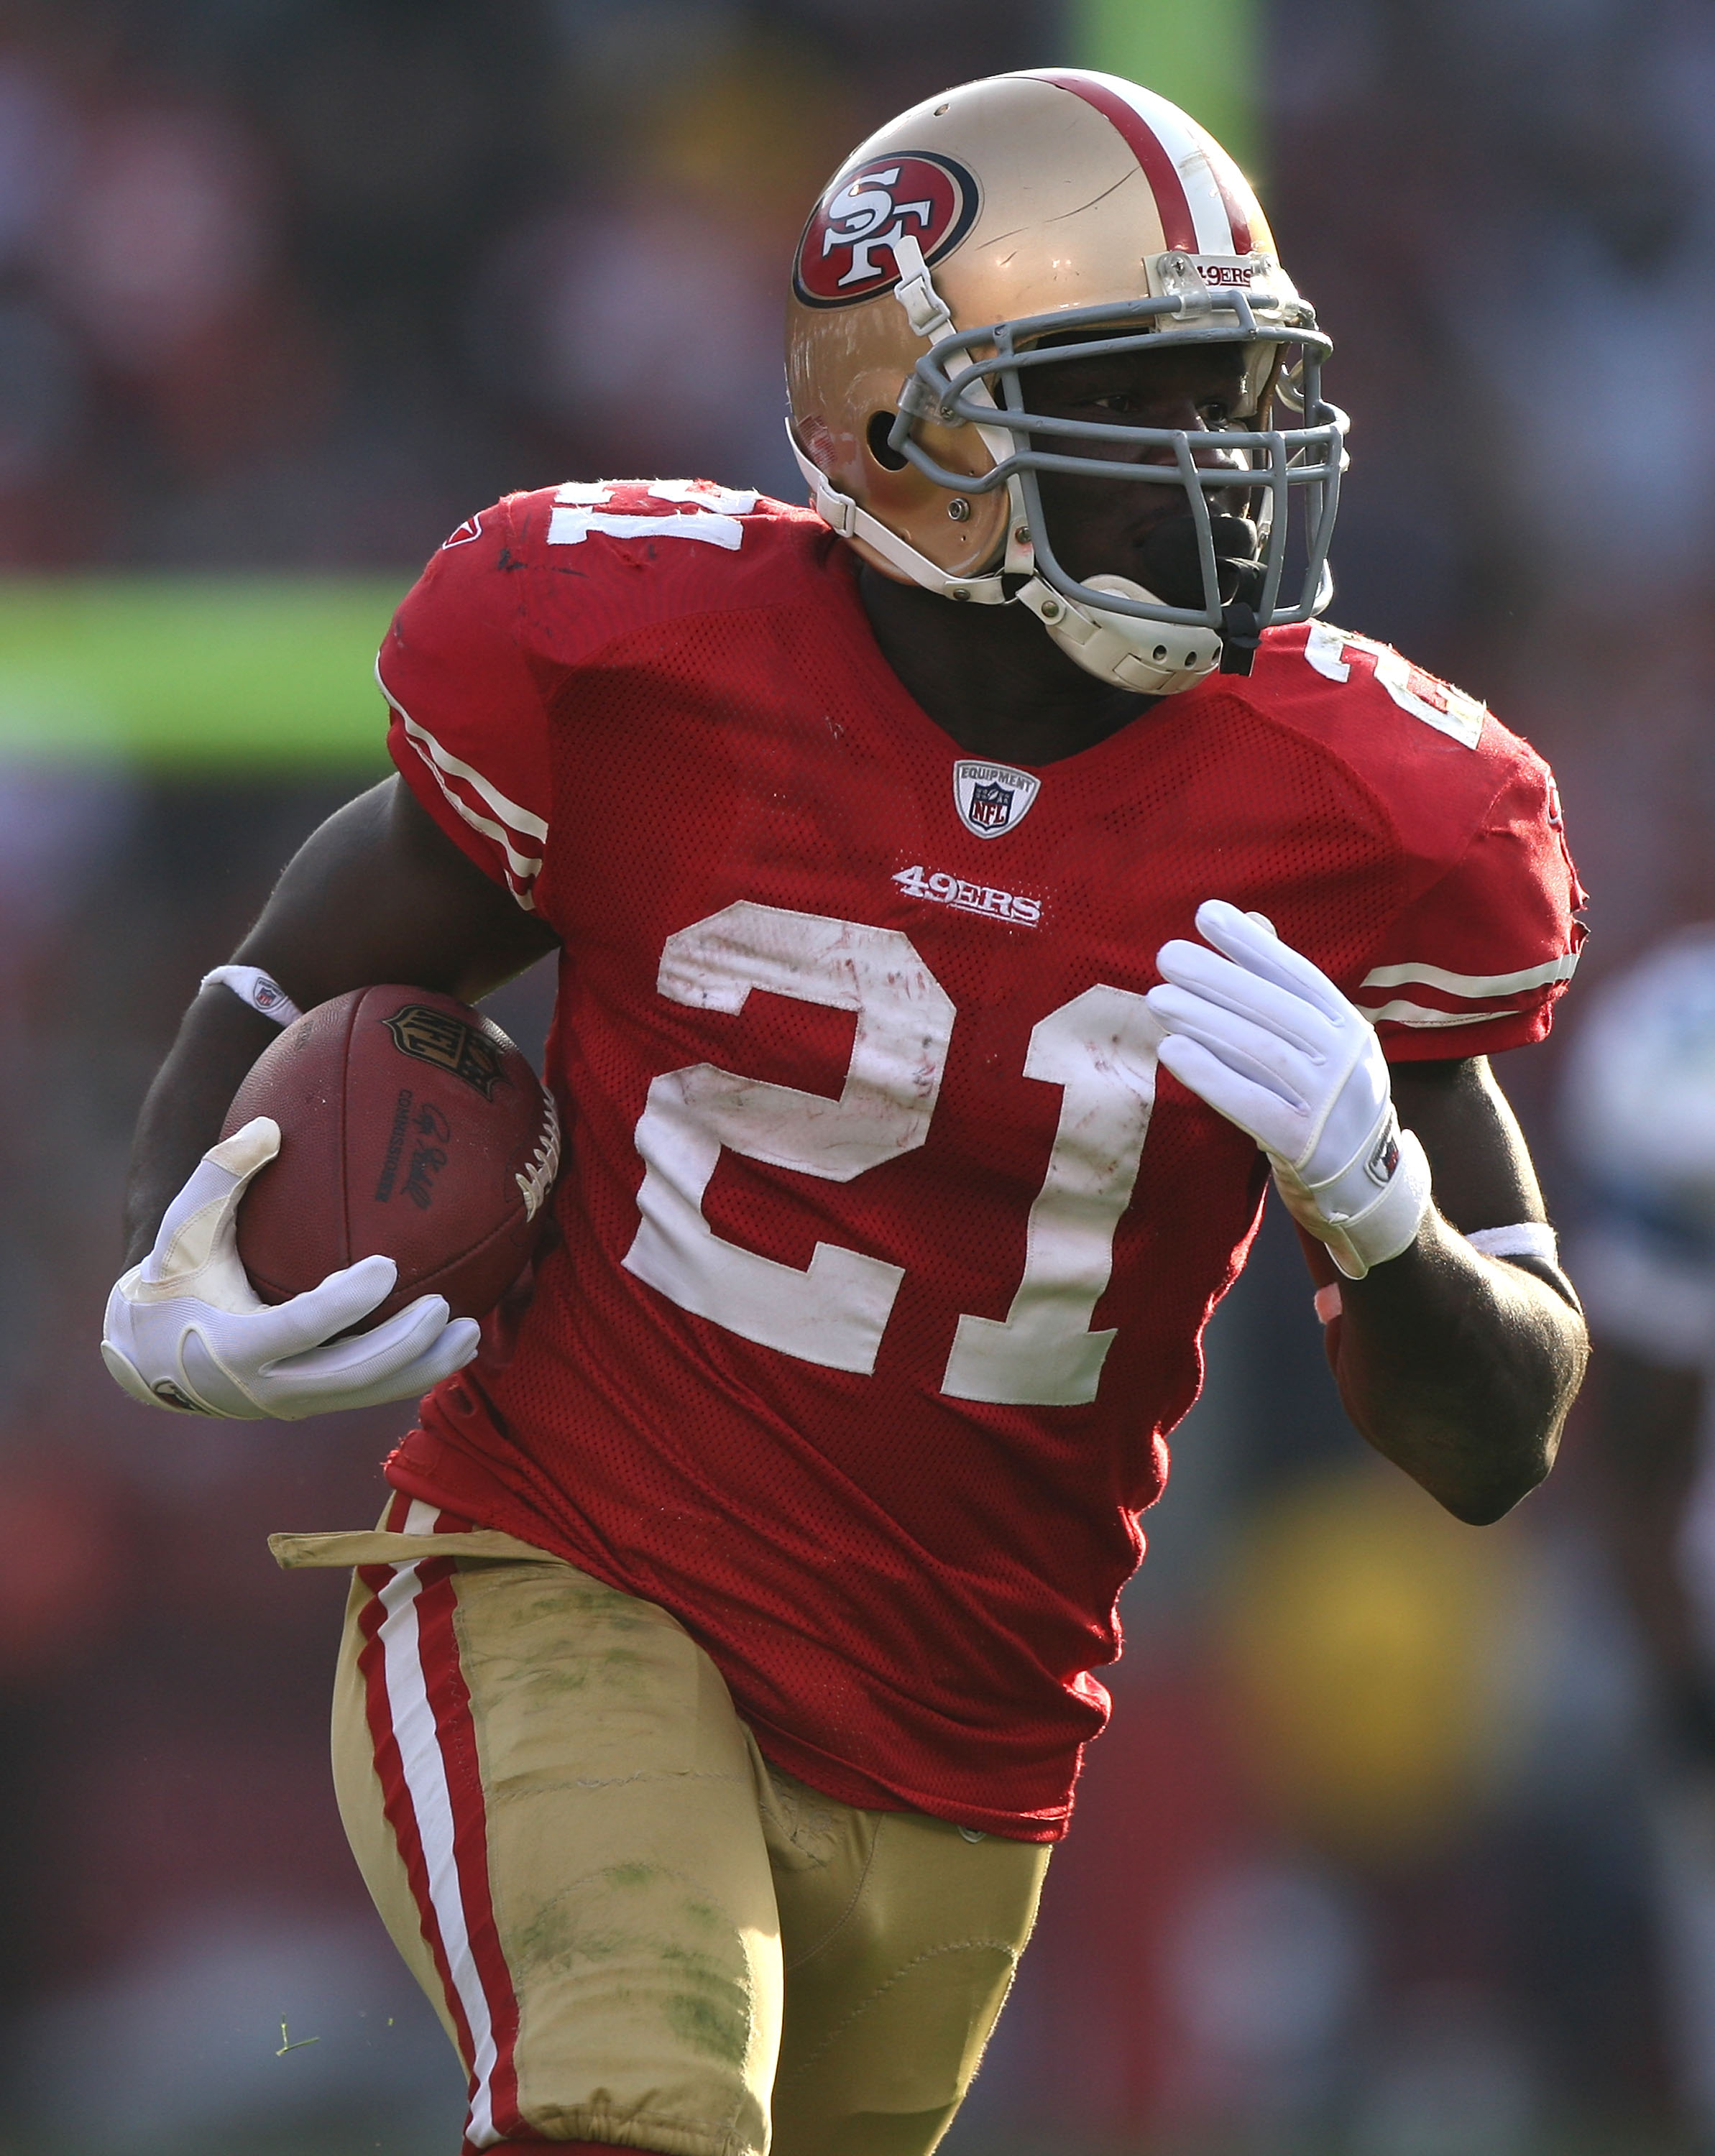 SAN FRANCISCO - DECEMBER 27:  Frank Gore #21 of the San Francisco 49ers runs against the Detroit Lions during an NFL game at Candlestick Park on December 27, 2009 in San Francisco, California.  (Photo by Jed Jacobsohn/Getty Images)